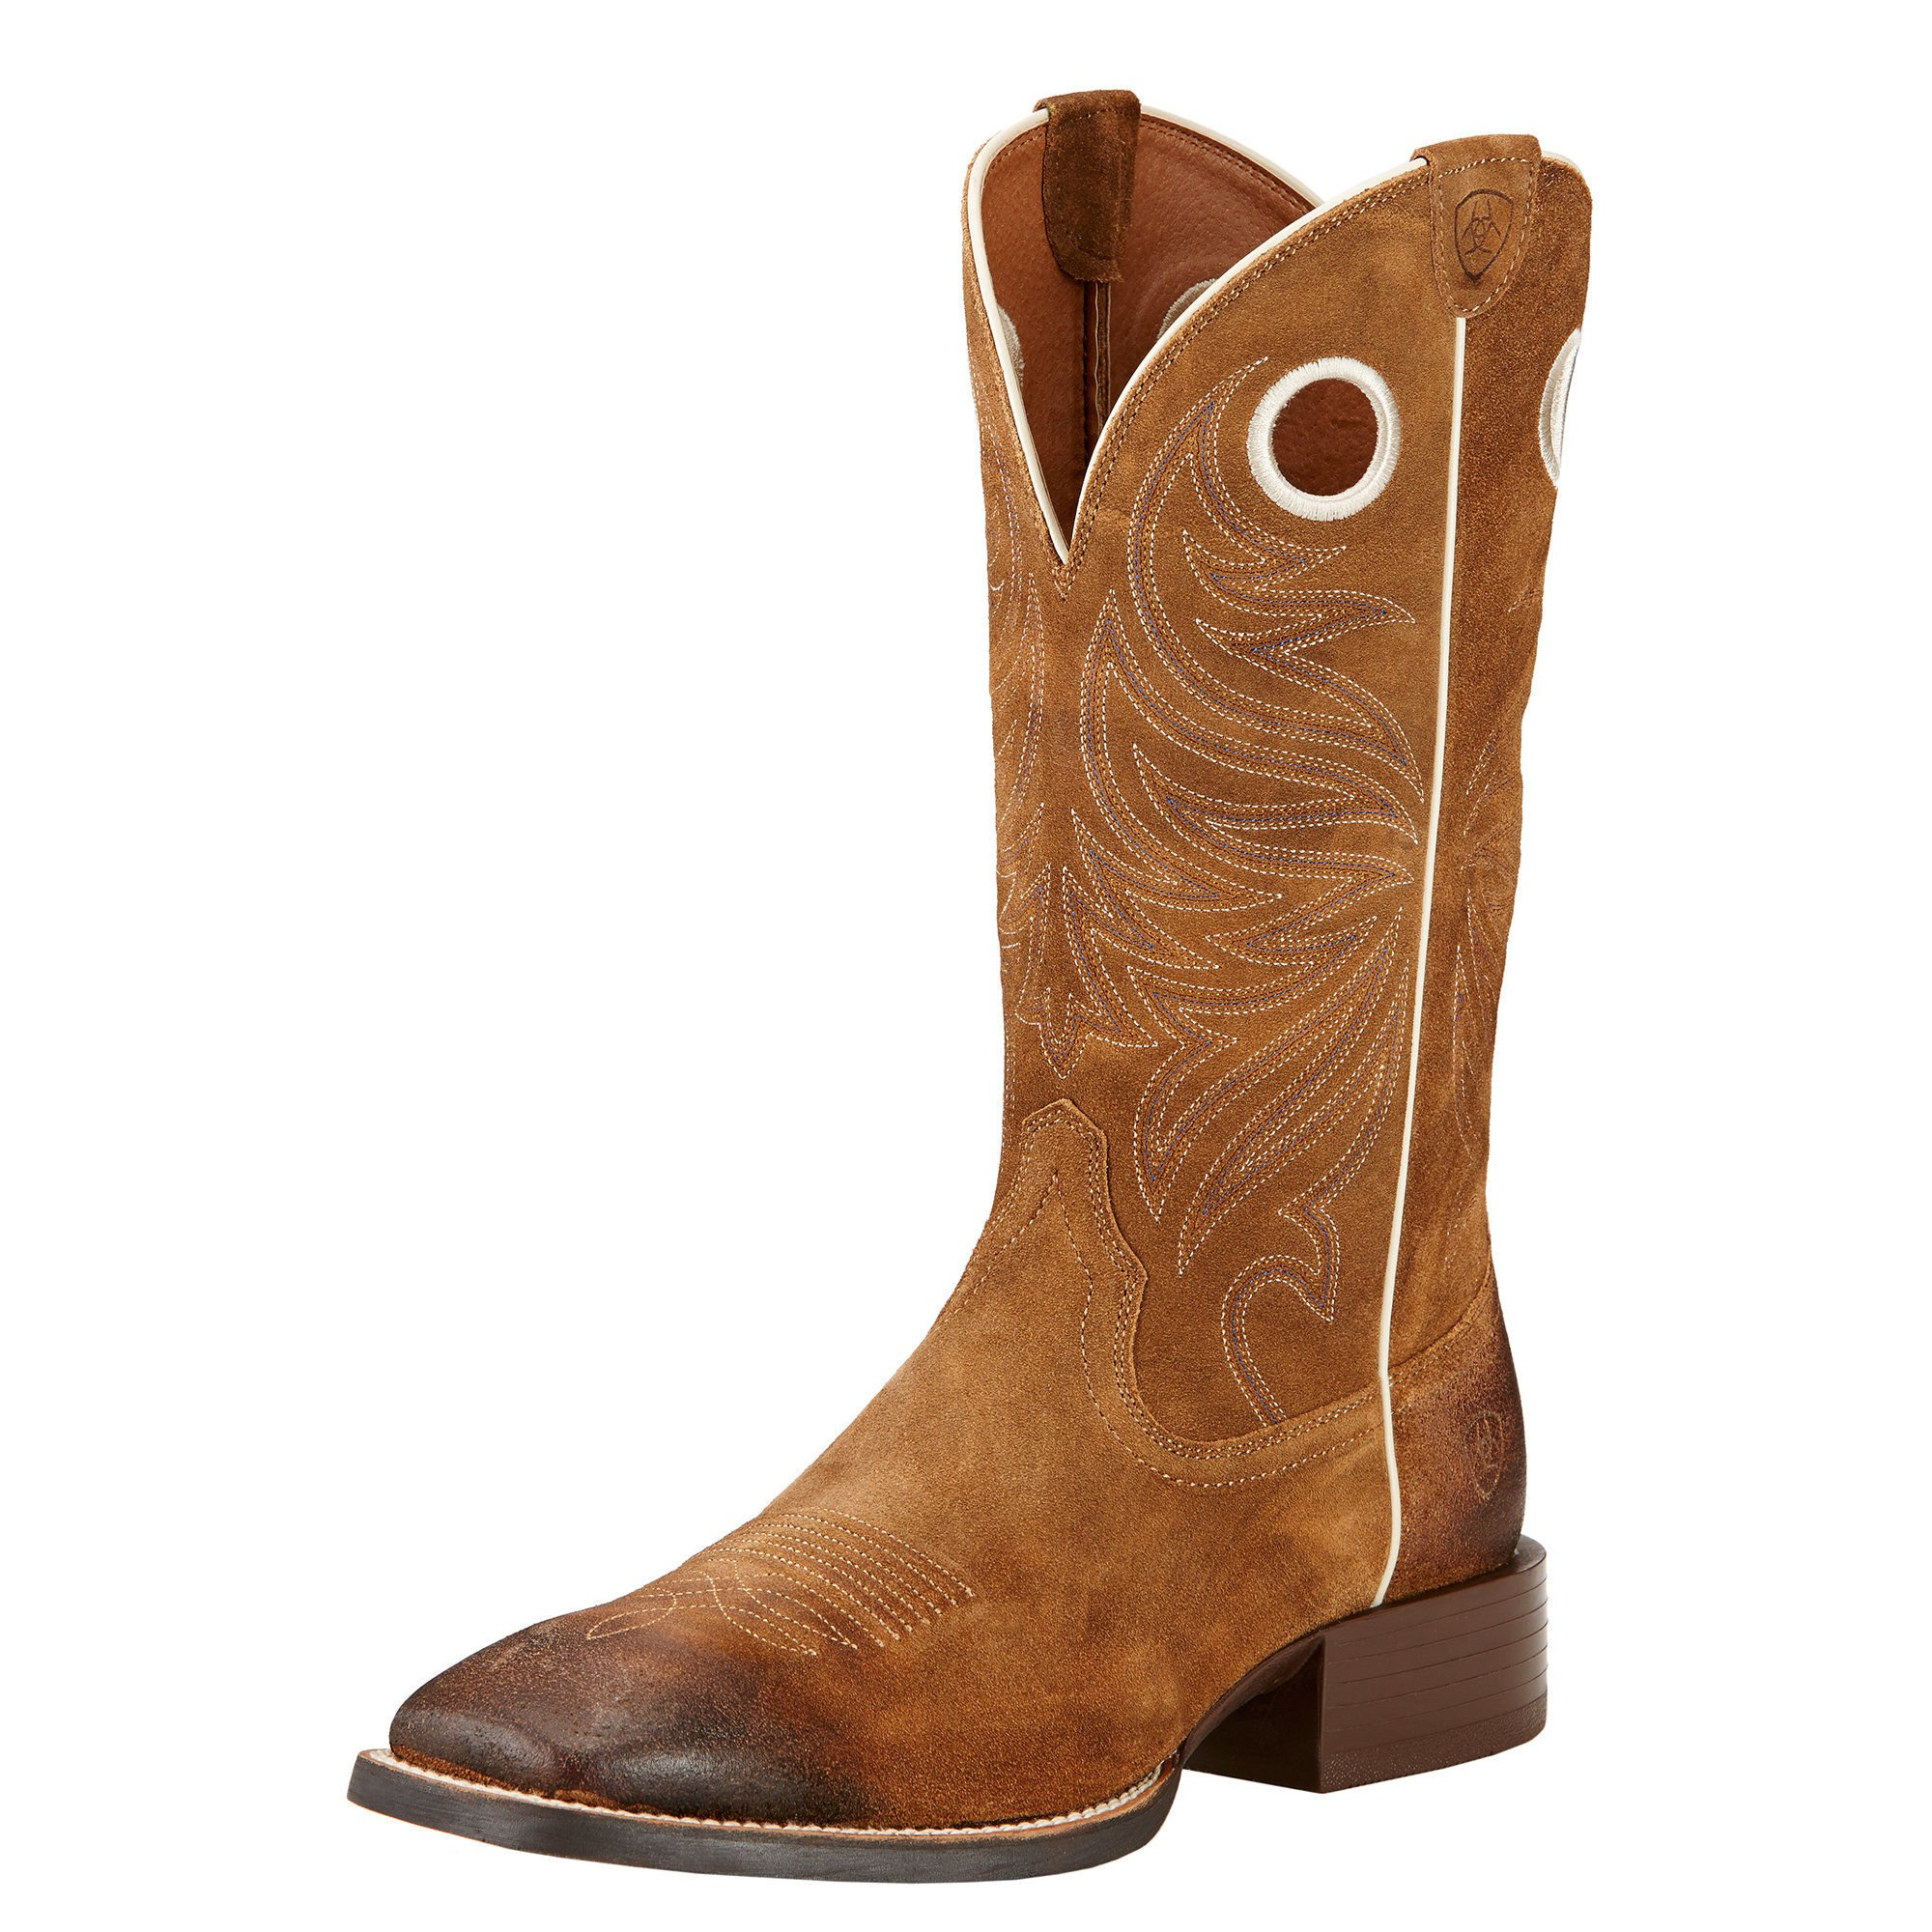 Ariat Mens Sport Rider Wide Square Toe Performance 11.5D Anitque Mocha Suede